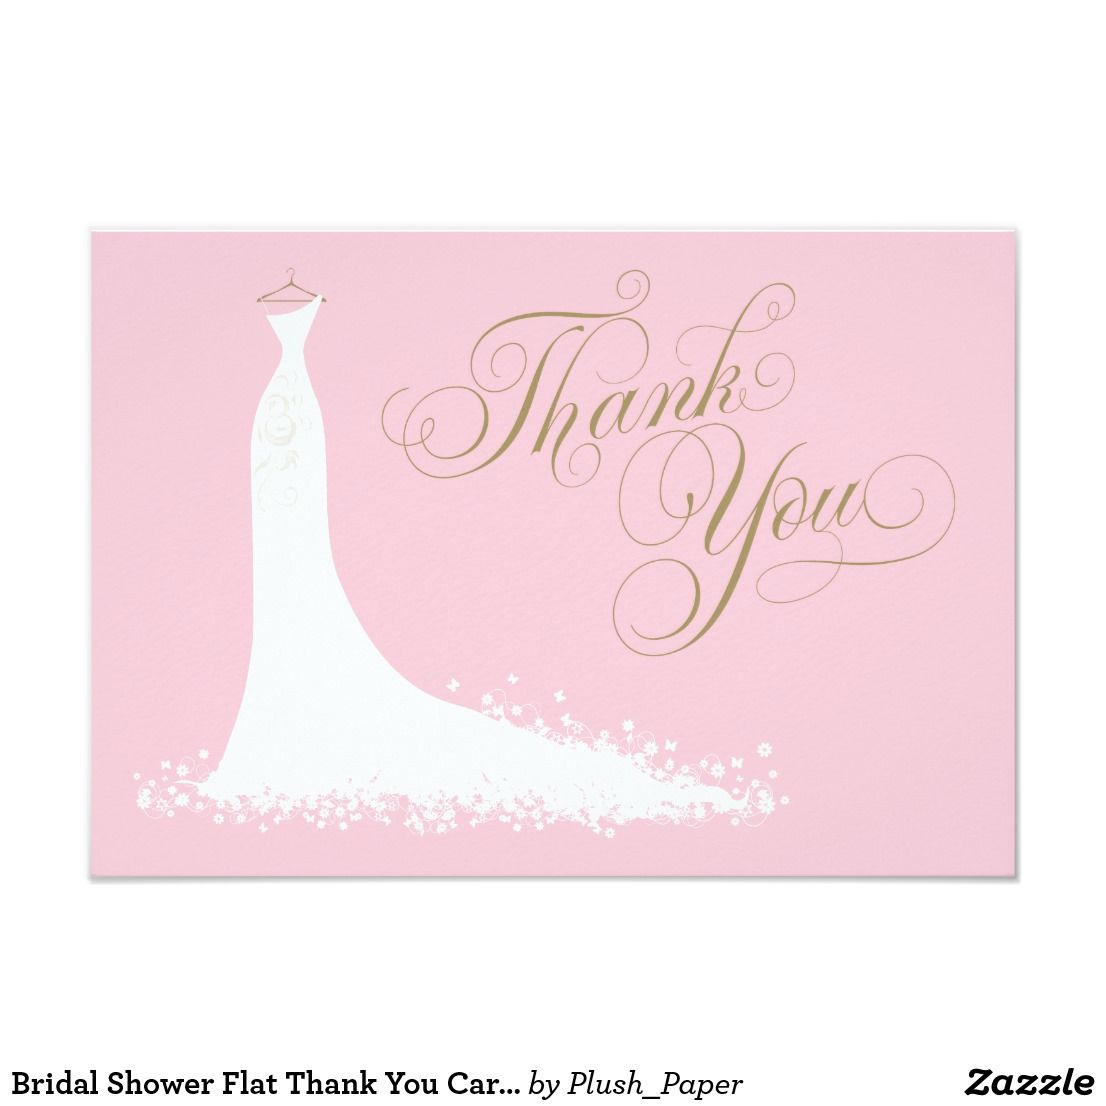 Bridal Shower Flat Thank You Cards Wedding Gown Bachelorette